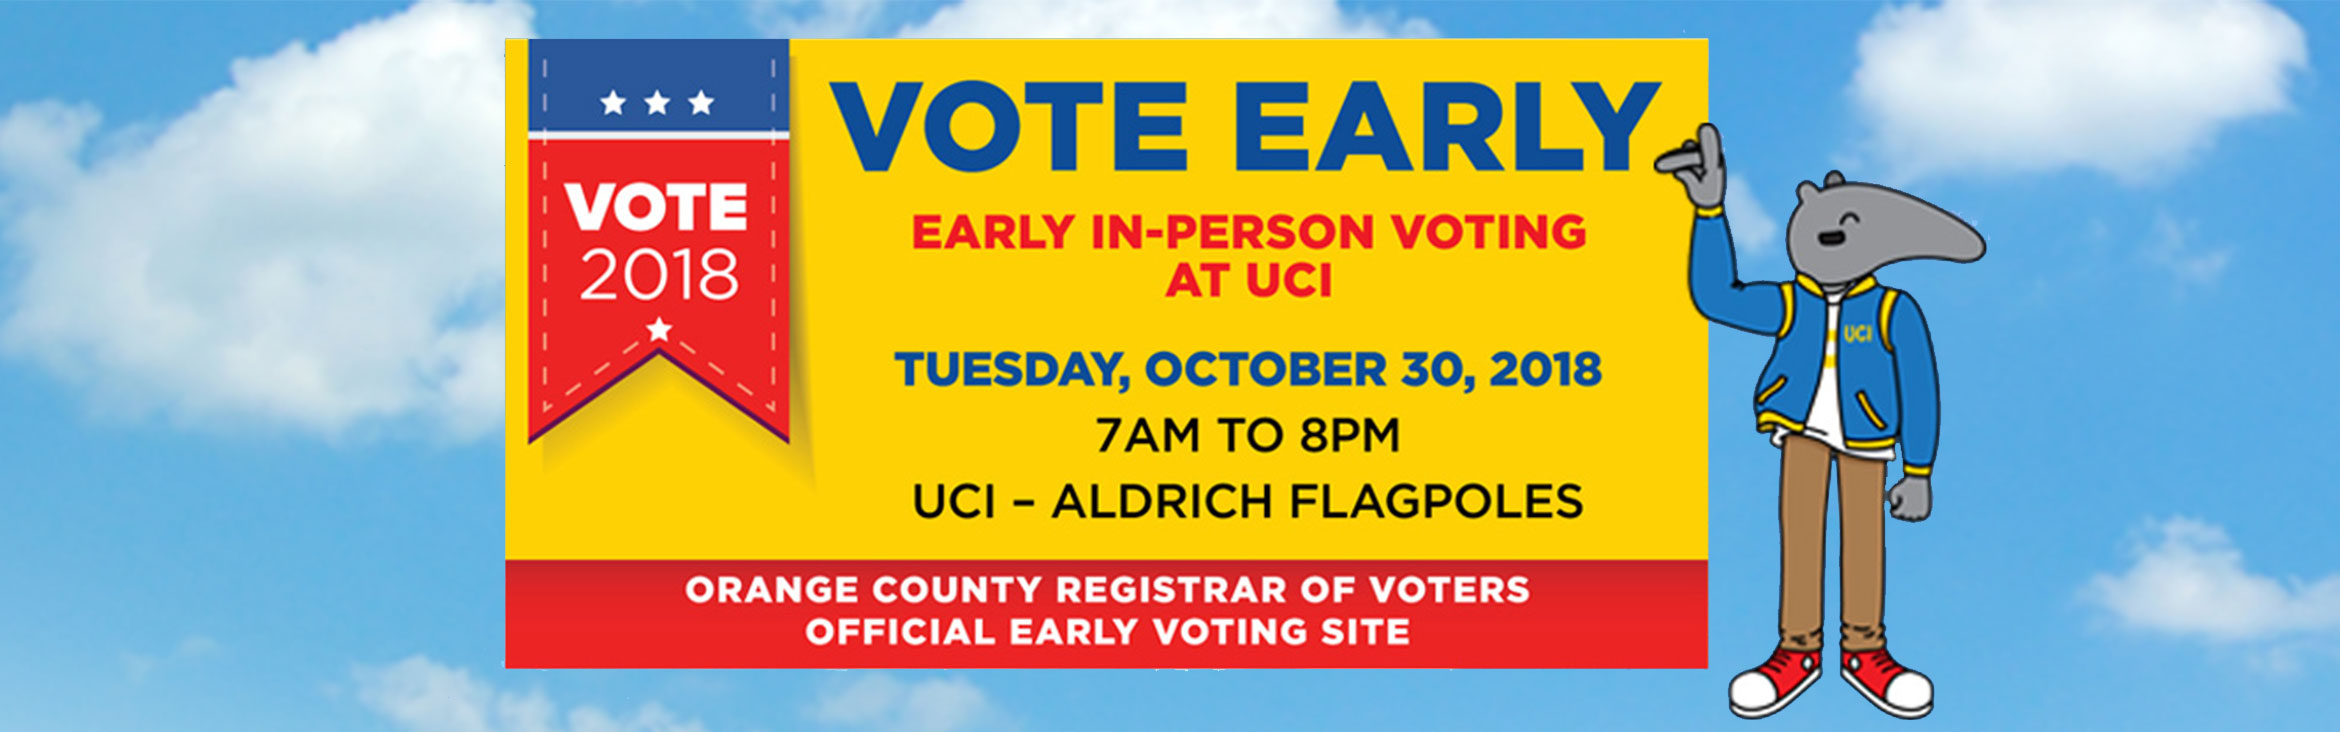 Early in-person voting at UCI on Tuesday October 30th, 2018 from 7am to 8pm at the Aldrich Flagpoles